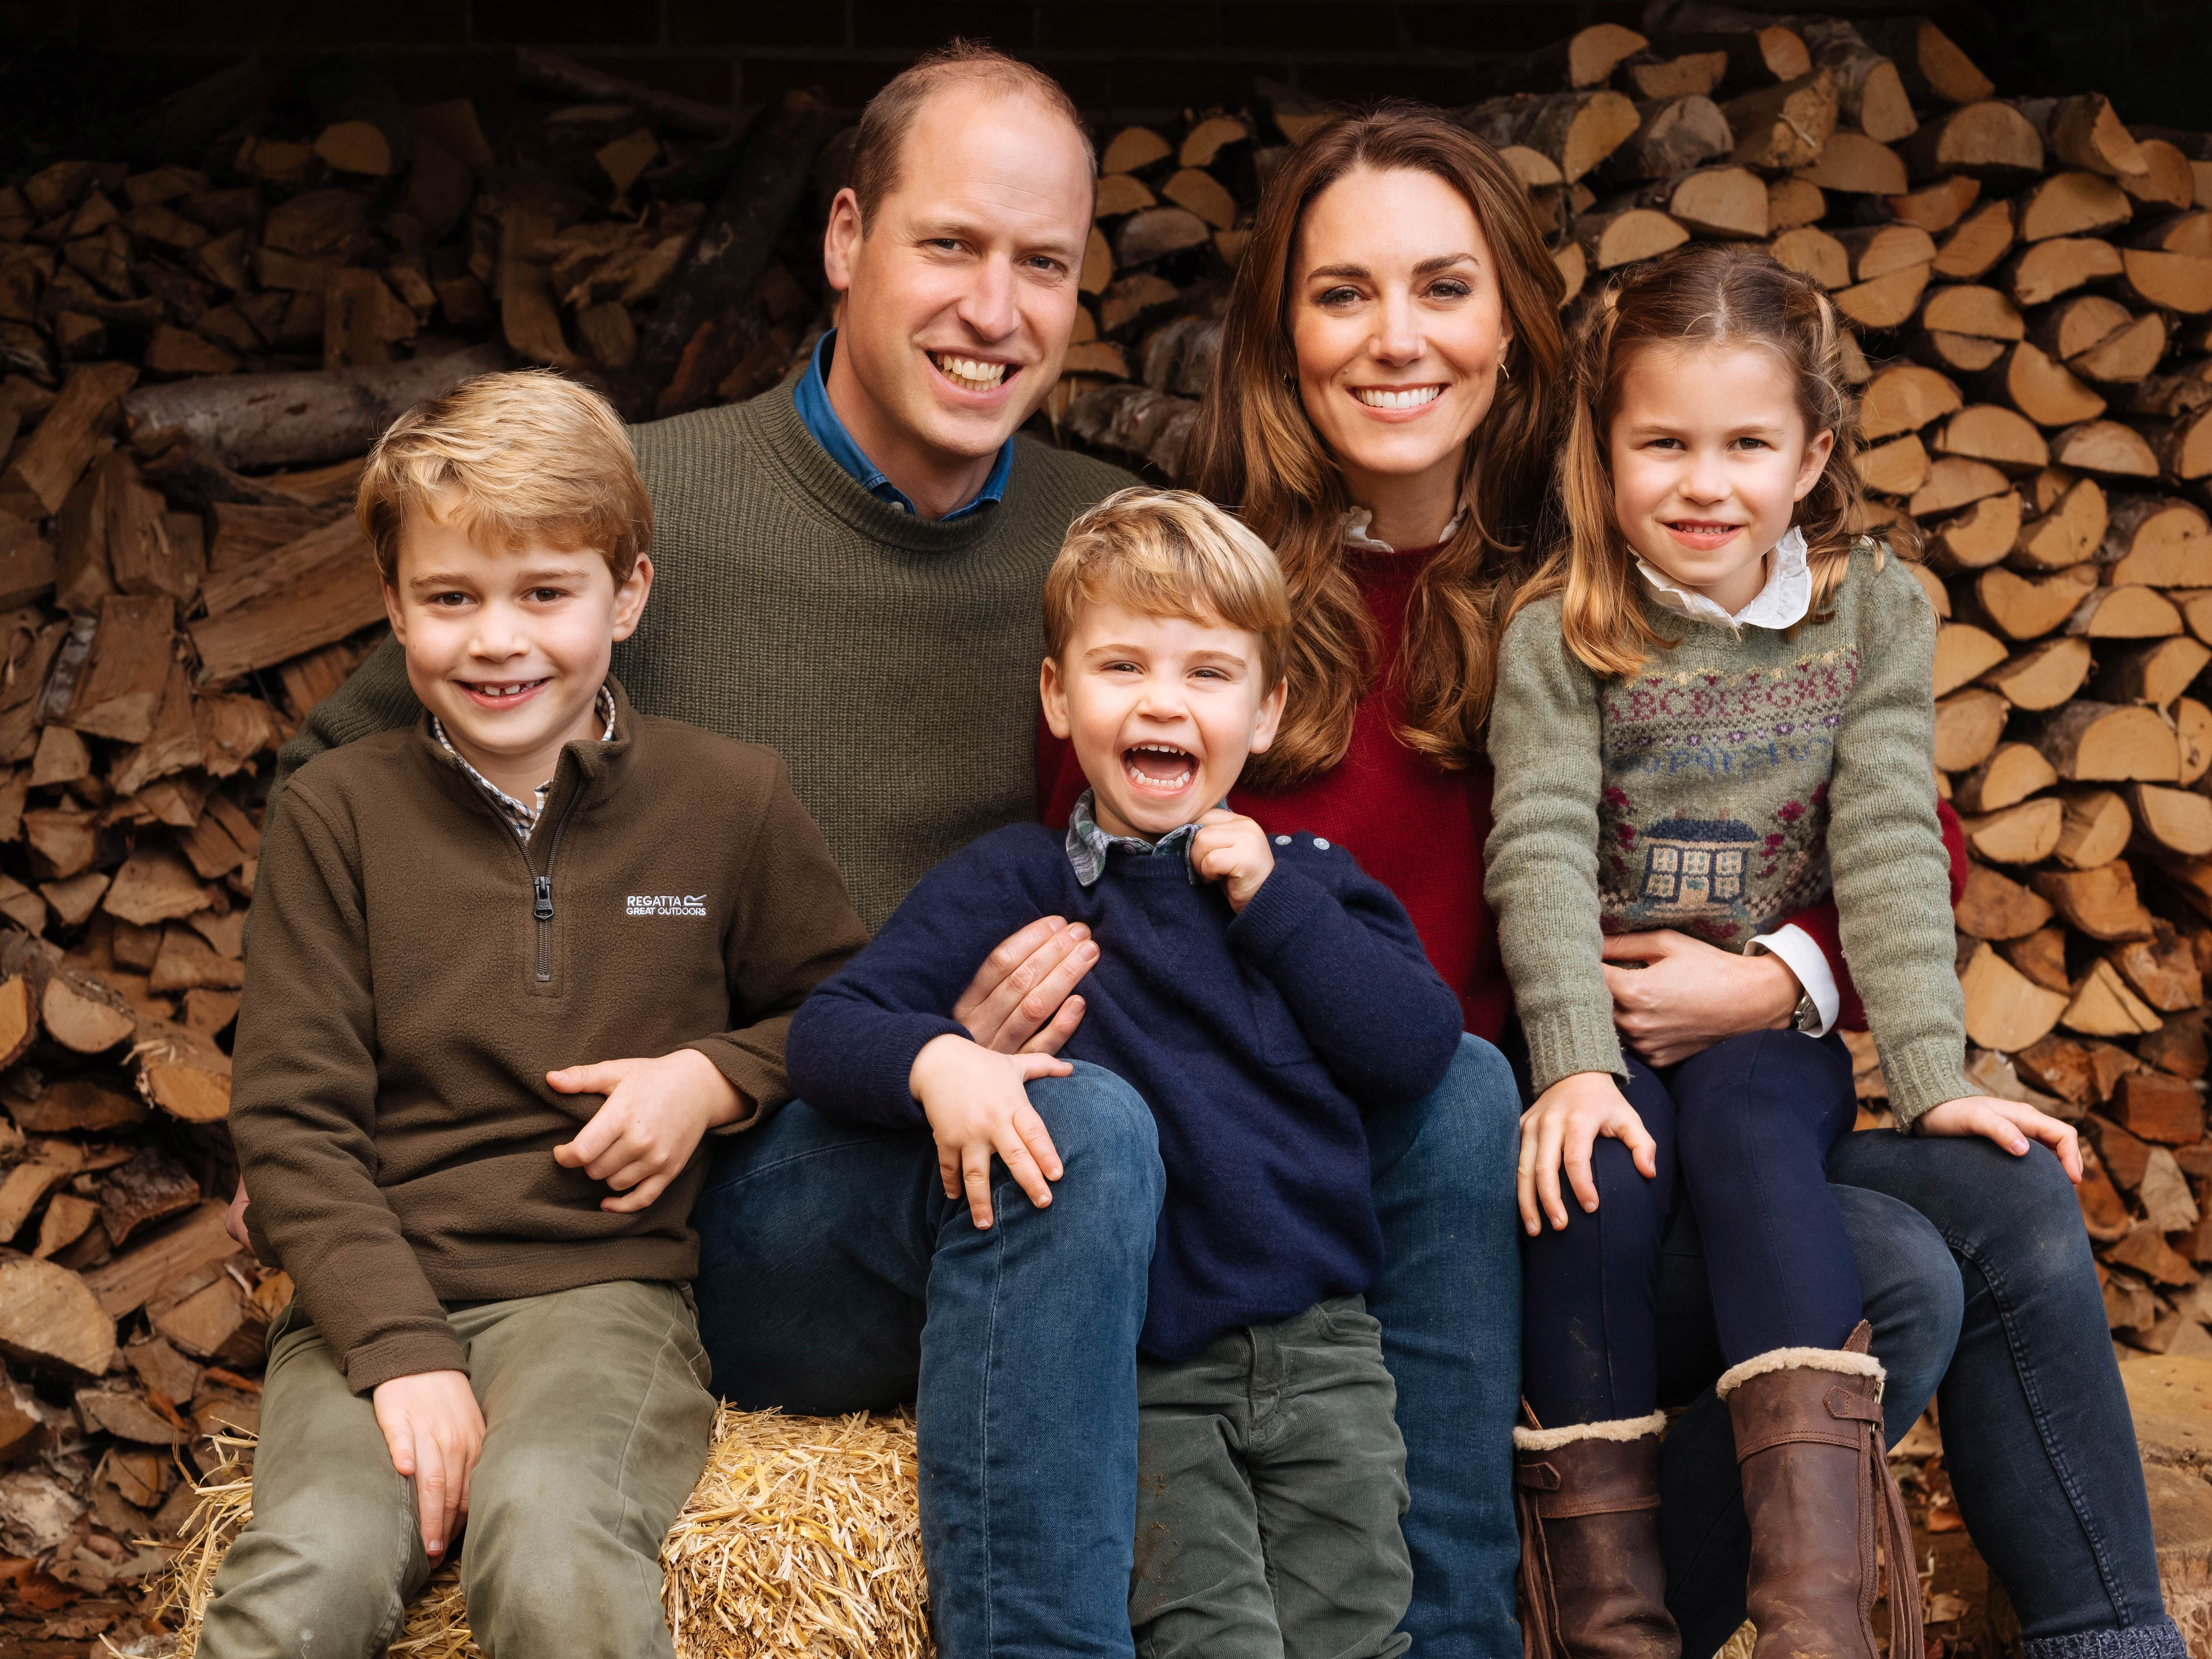 Prince William, Duke of Cambridge and Kate Middleton, Duchess of Cambridge with their three children Prince George, Princess Charlotte and Prince Louis at Anmer Hall in Norfolk | Photo: Matt Porteous / The Duke and Duchess of Cambridge/Kensington Palace via Getty Images